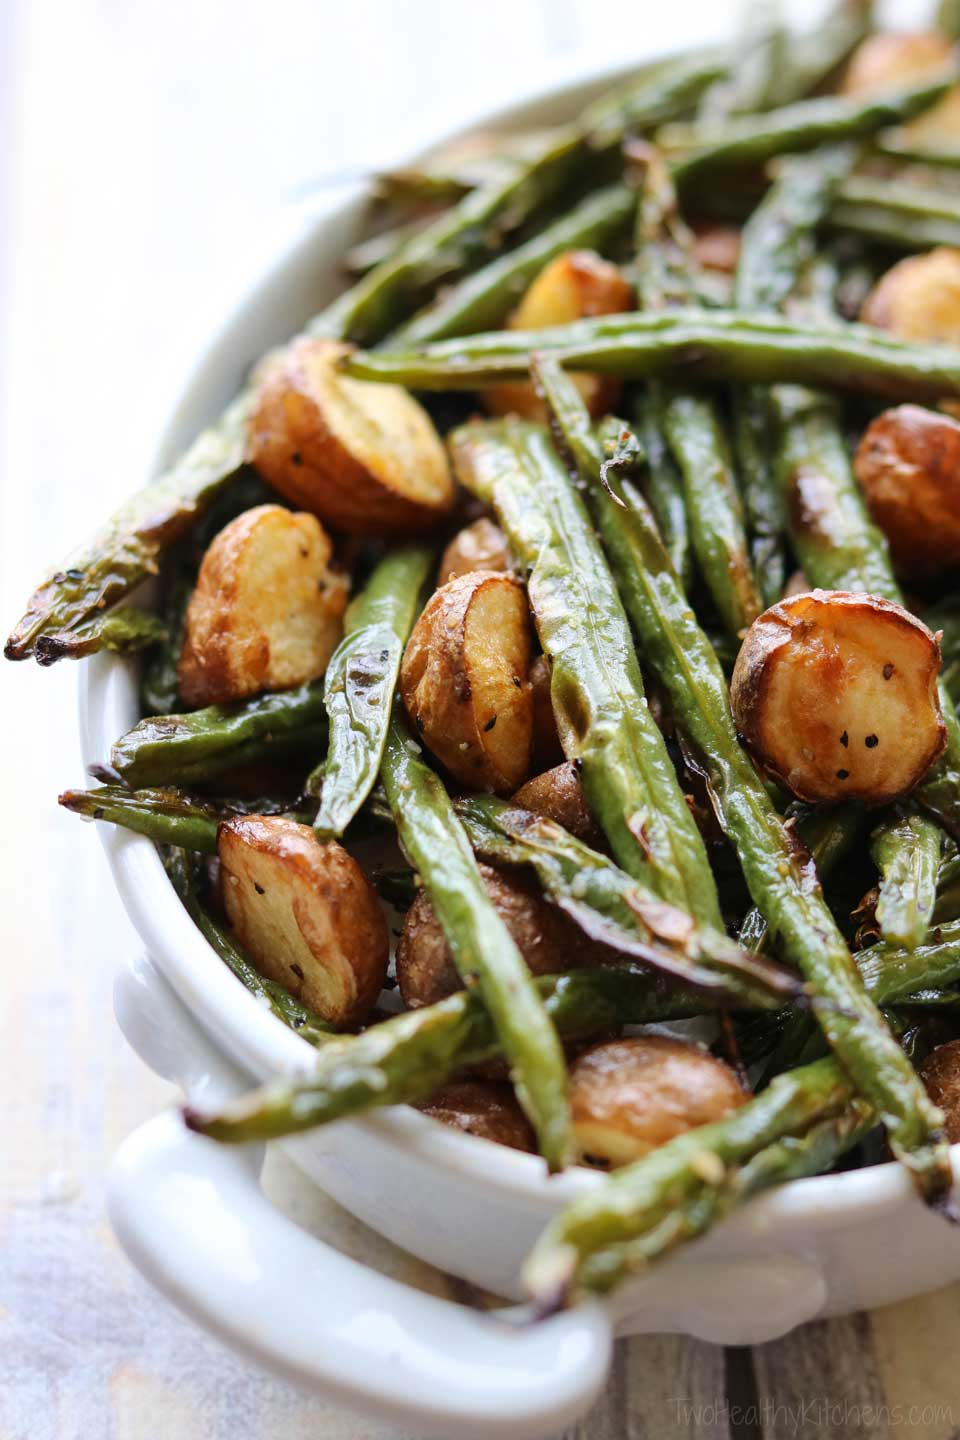 One way we love to change up these roasted green beans is by serving them mixed with roasted red potatoes. It's a quick adaptation that yields another easy side dish idea!